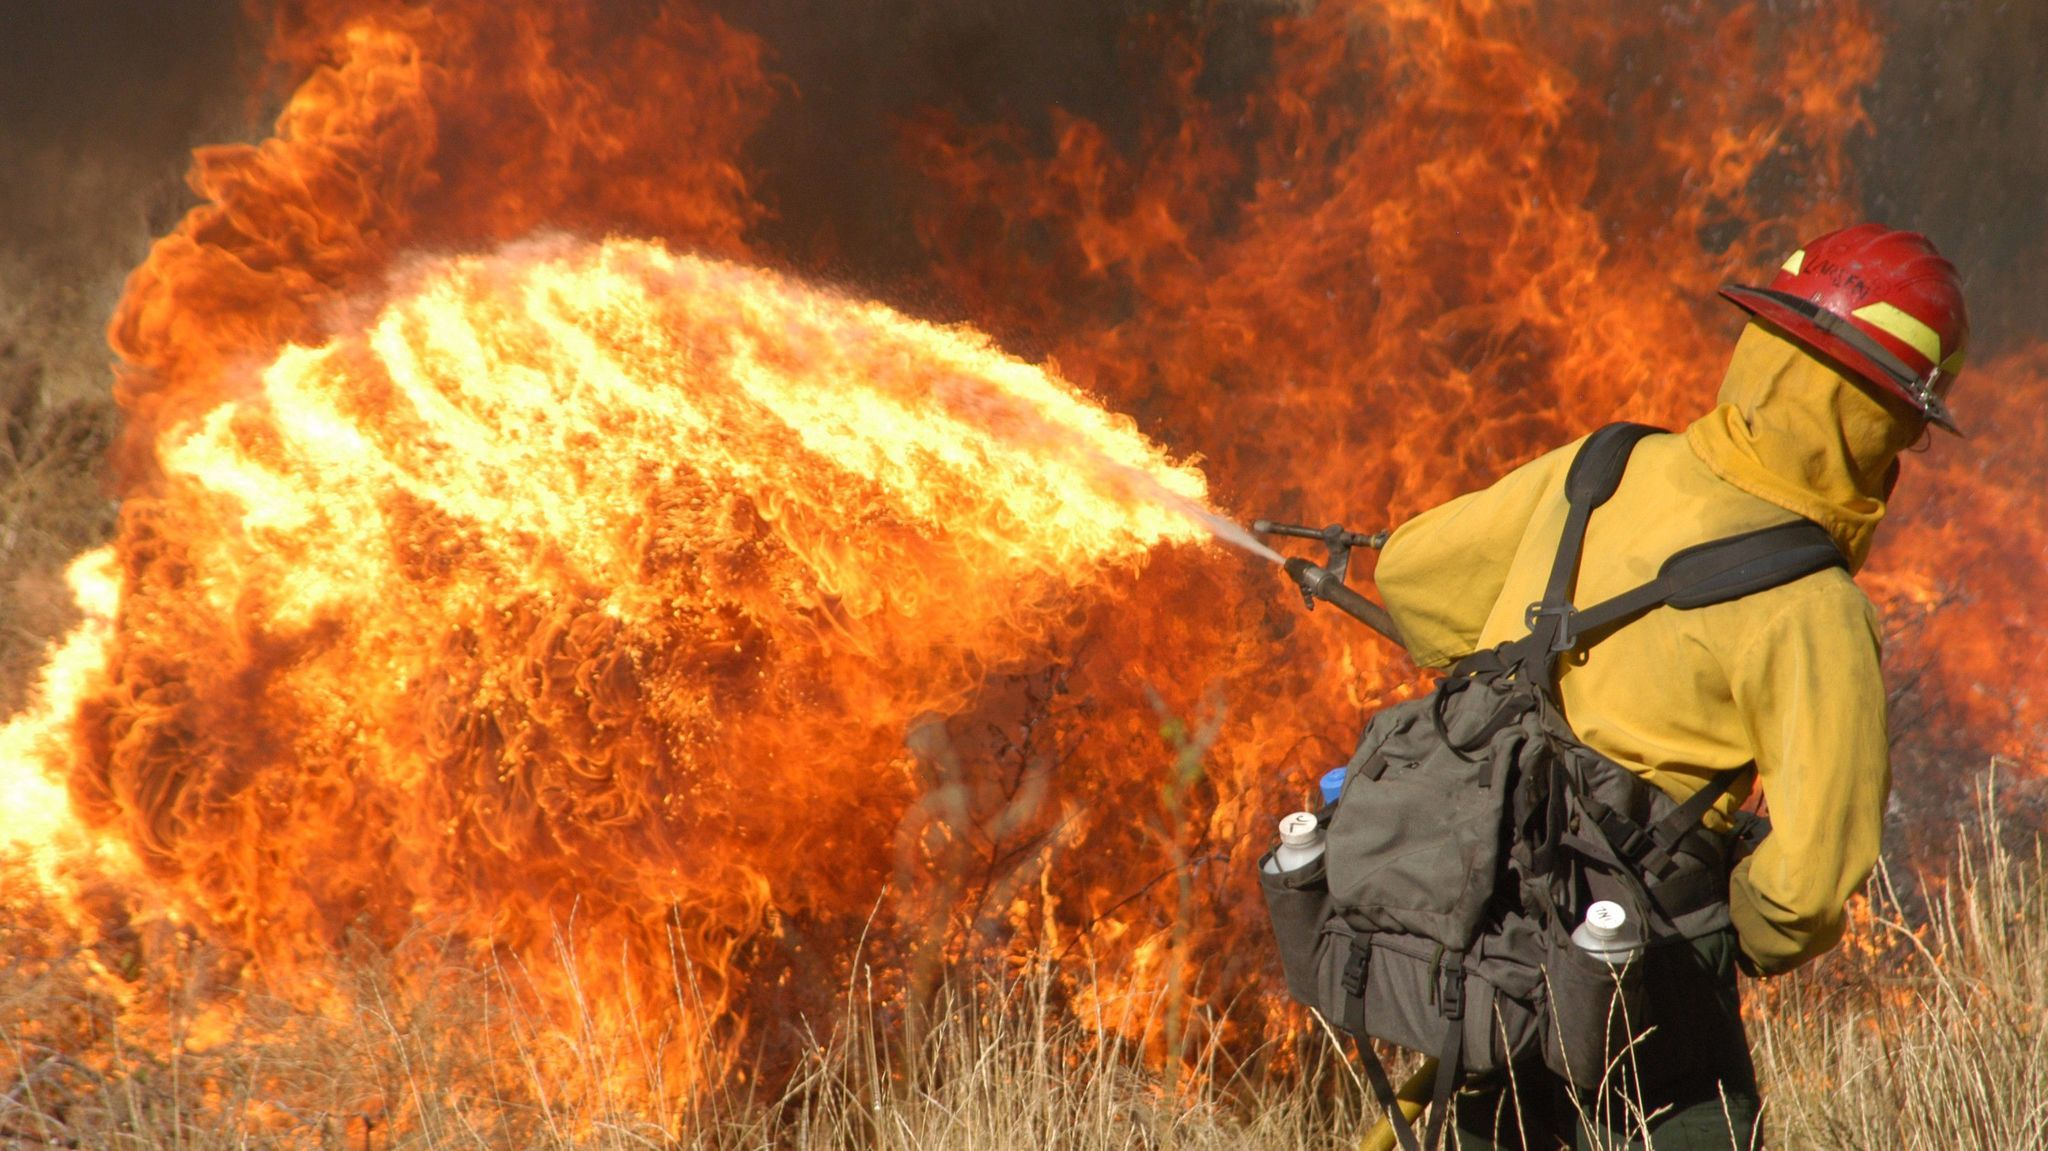 Jamie Larsen uses a fire wand during a prescribed burn in the North Fork Corridor of the Shoshone National Forest in Wyoming on  Oct. 14, 2005.